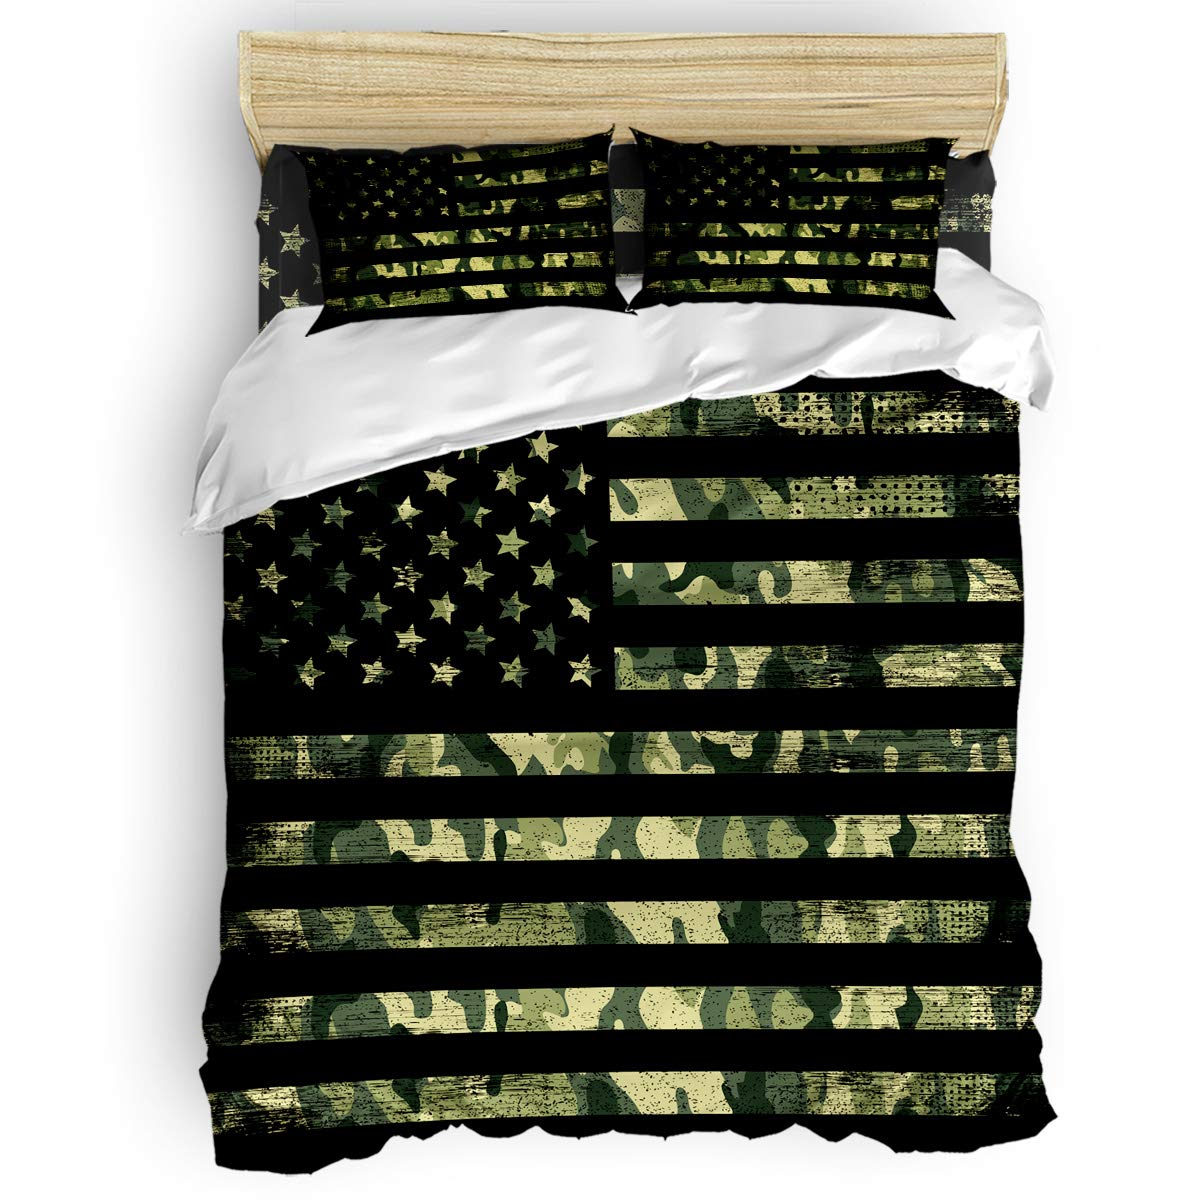 Libaoge 4 Pieces Bedding Sets, USA Flag Duvet Cover Set, Camouflage Themed,Include 1 Flat Sheet 1 Duvet Cover and 2 Pillow Cases, Full Size